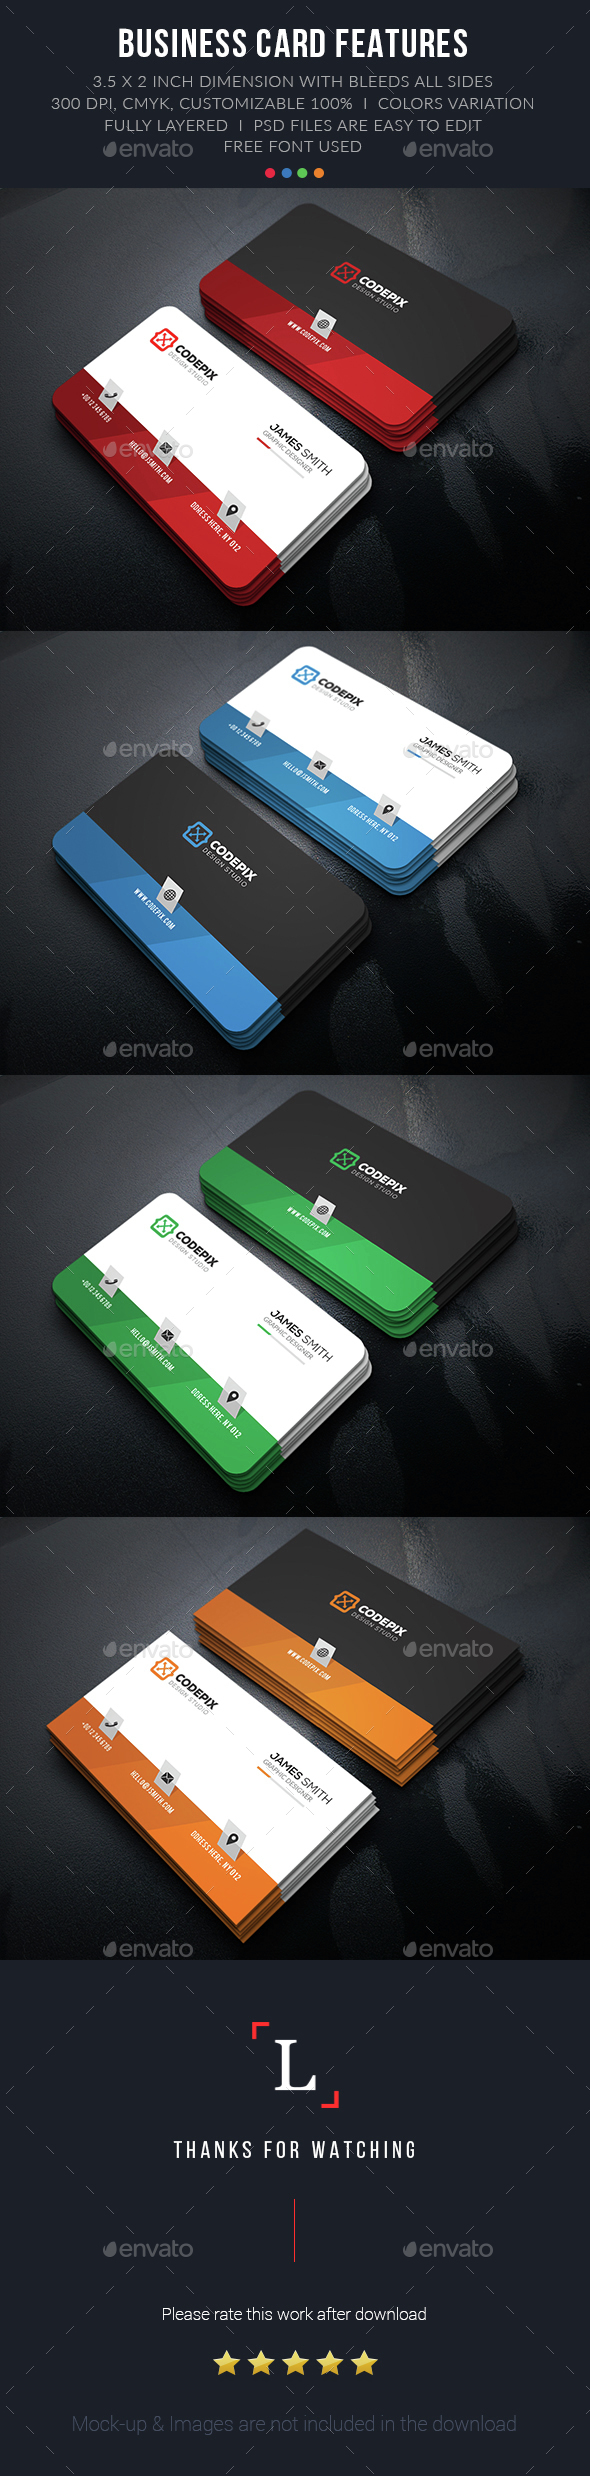 Shade Corporate Business Cards - Business Cards Print Templates